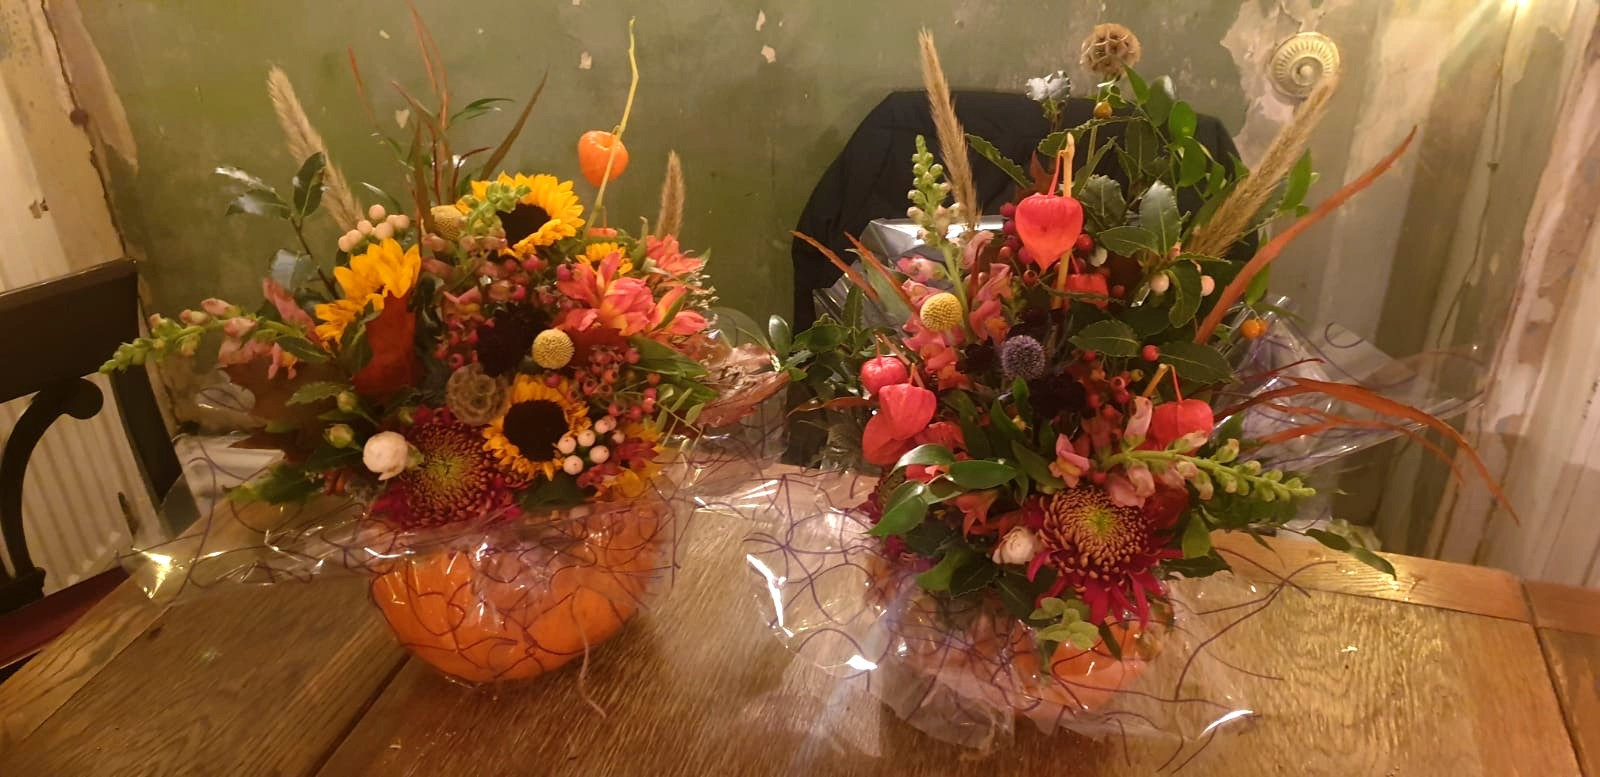 Pumpkins and Flowers at The Mixer